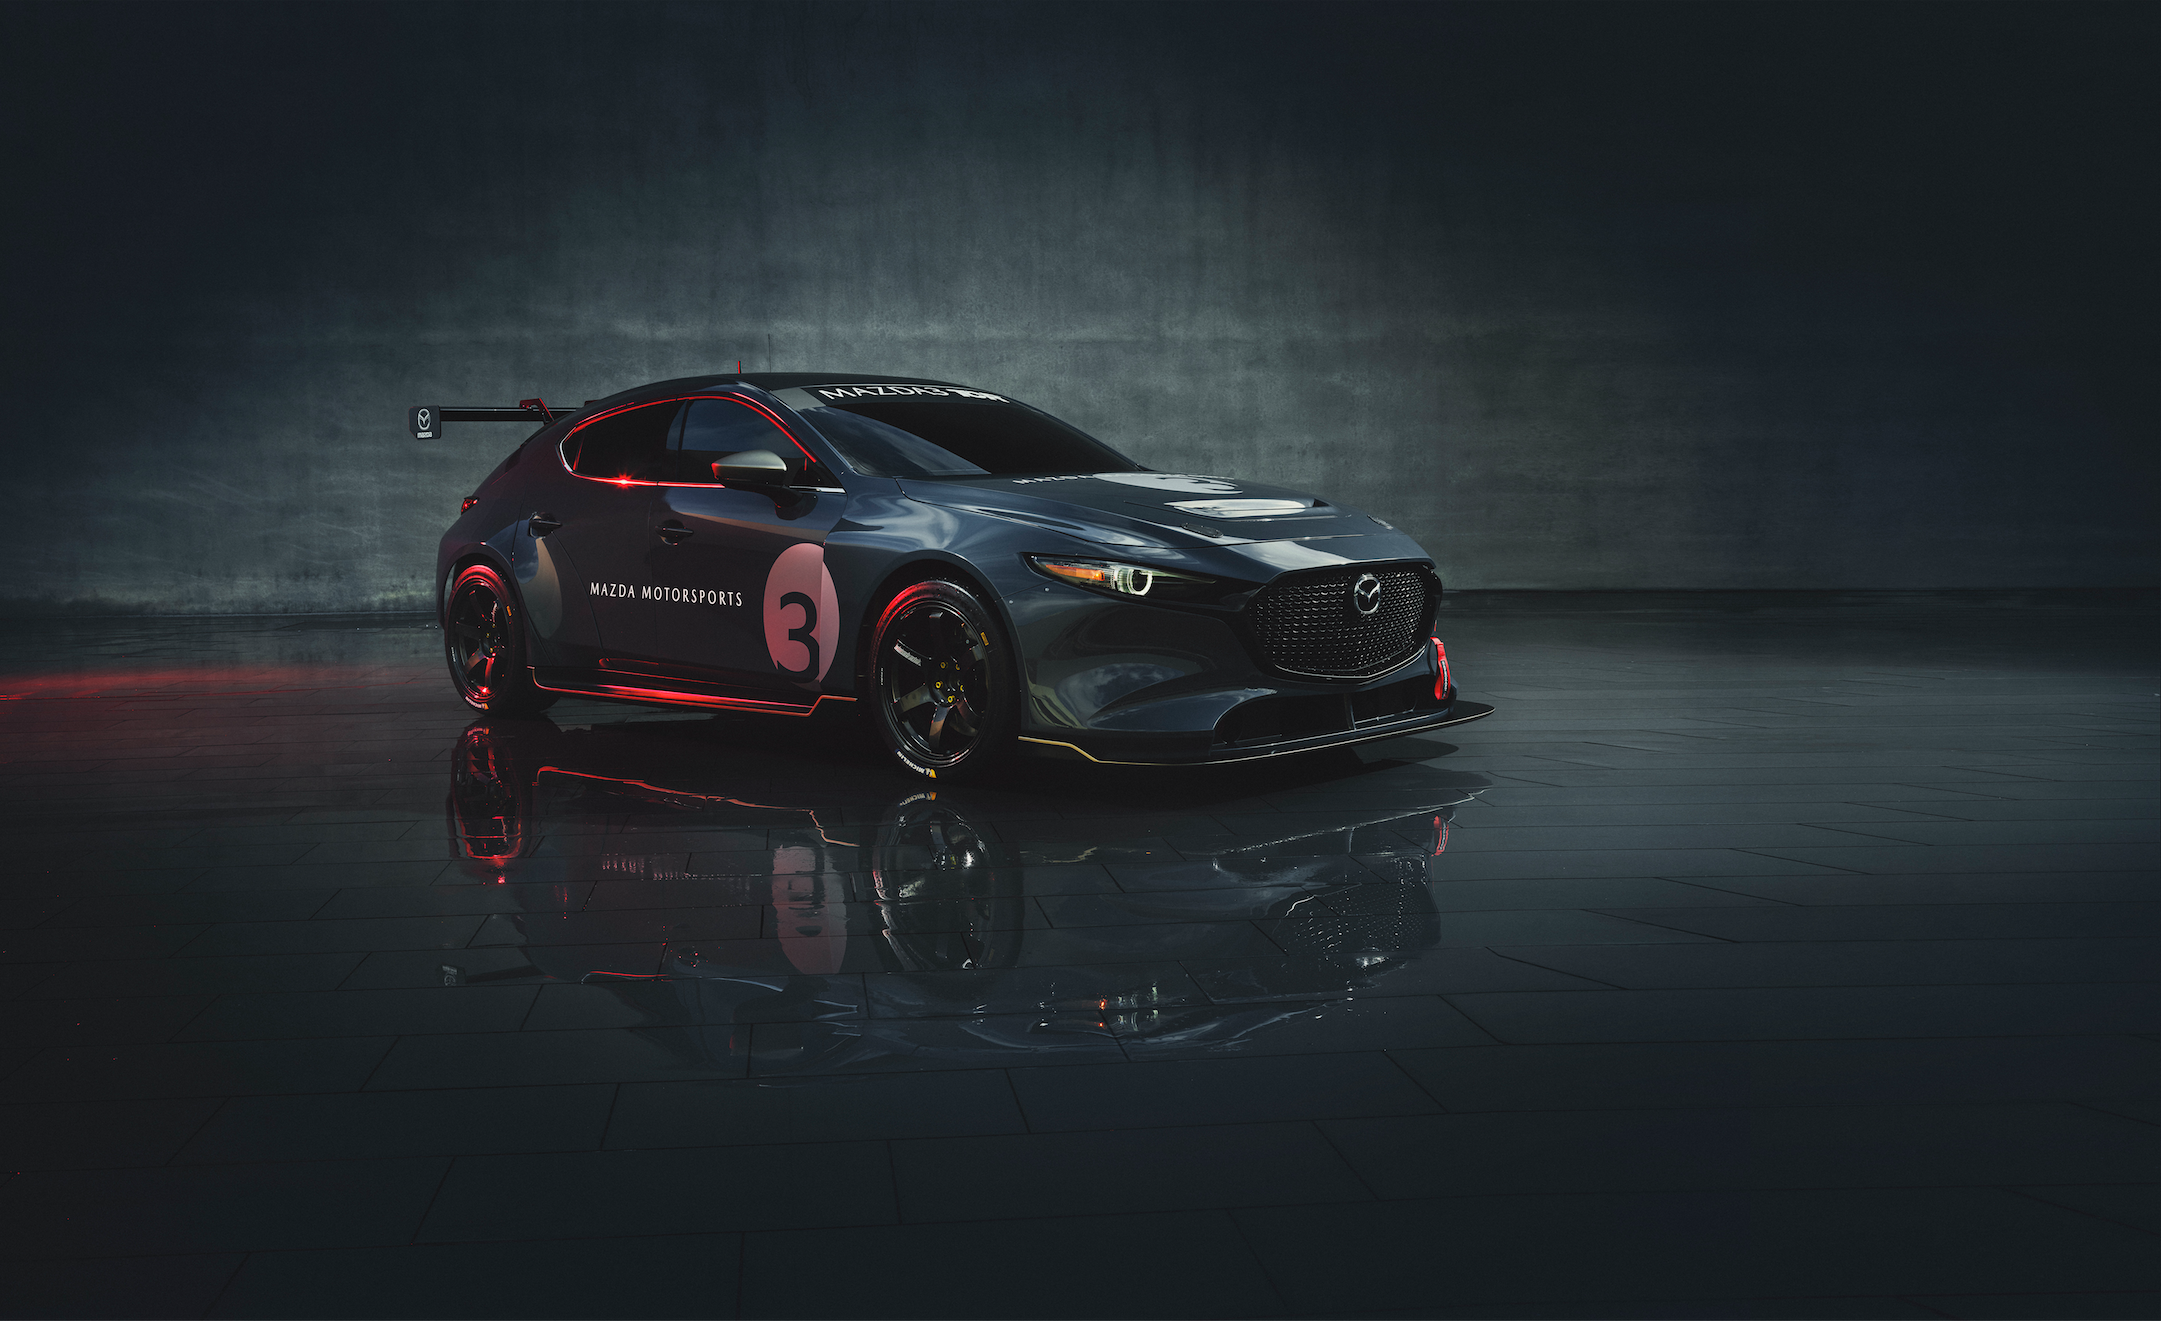 You Can Now Buy a Mazda 3 TCR Race Car